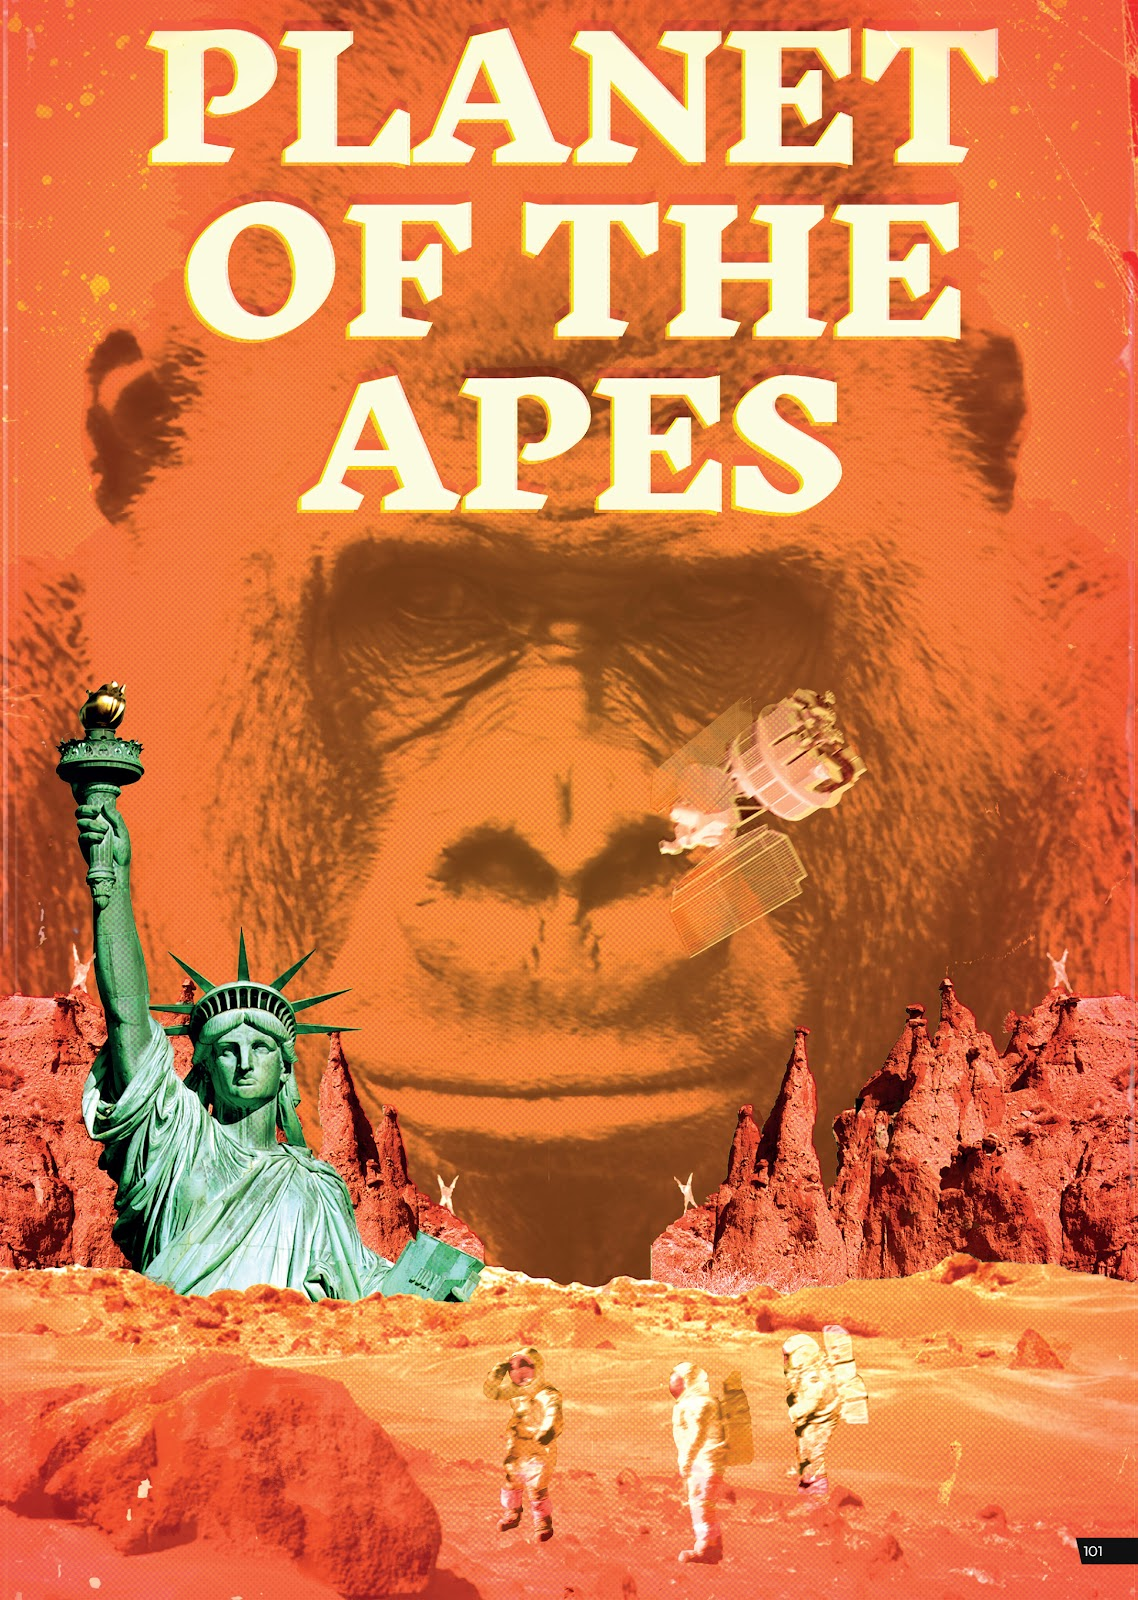 Read online Planet of the Apes Artist Tribute comic -  Issue # TPB - 101